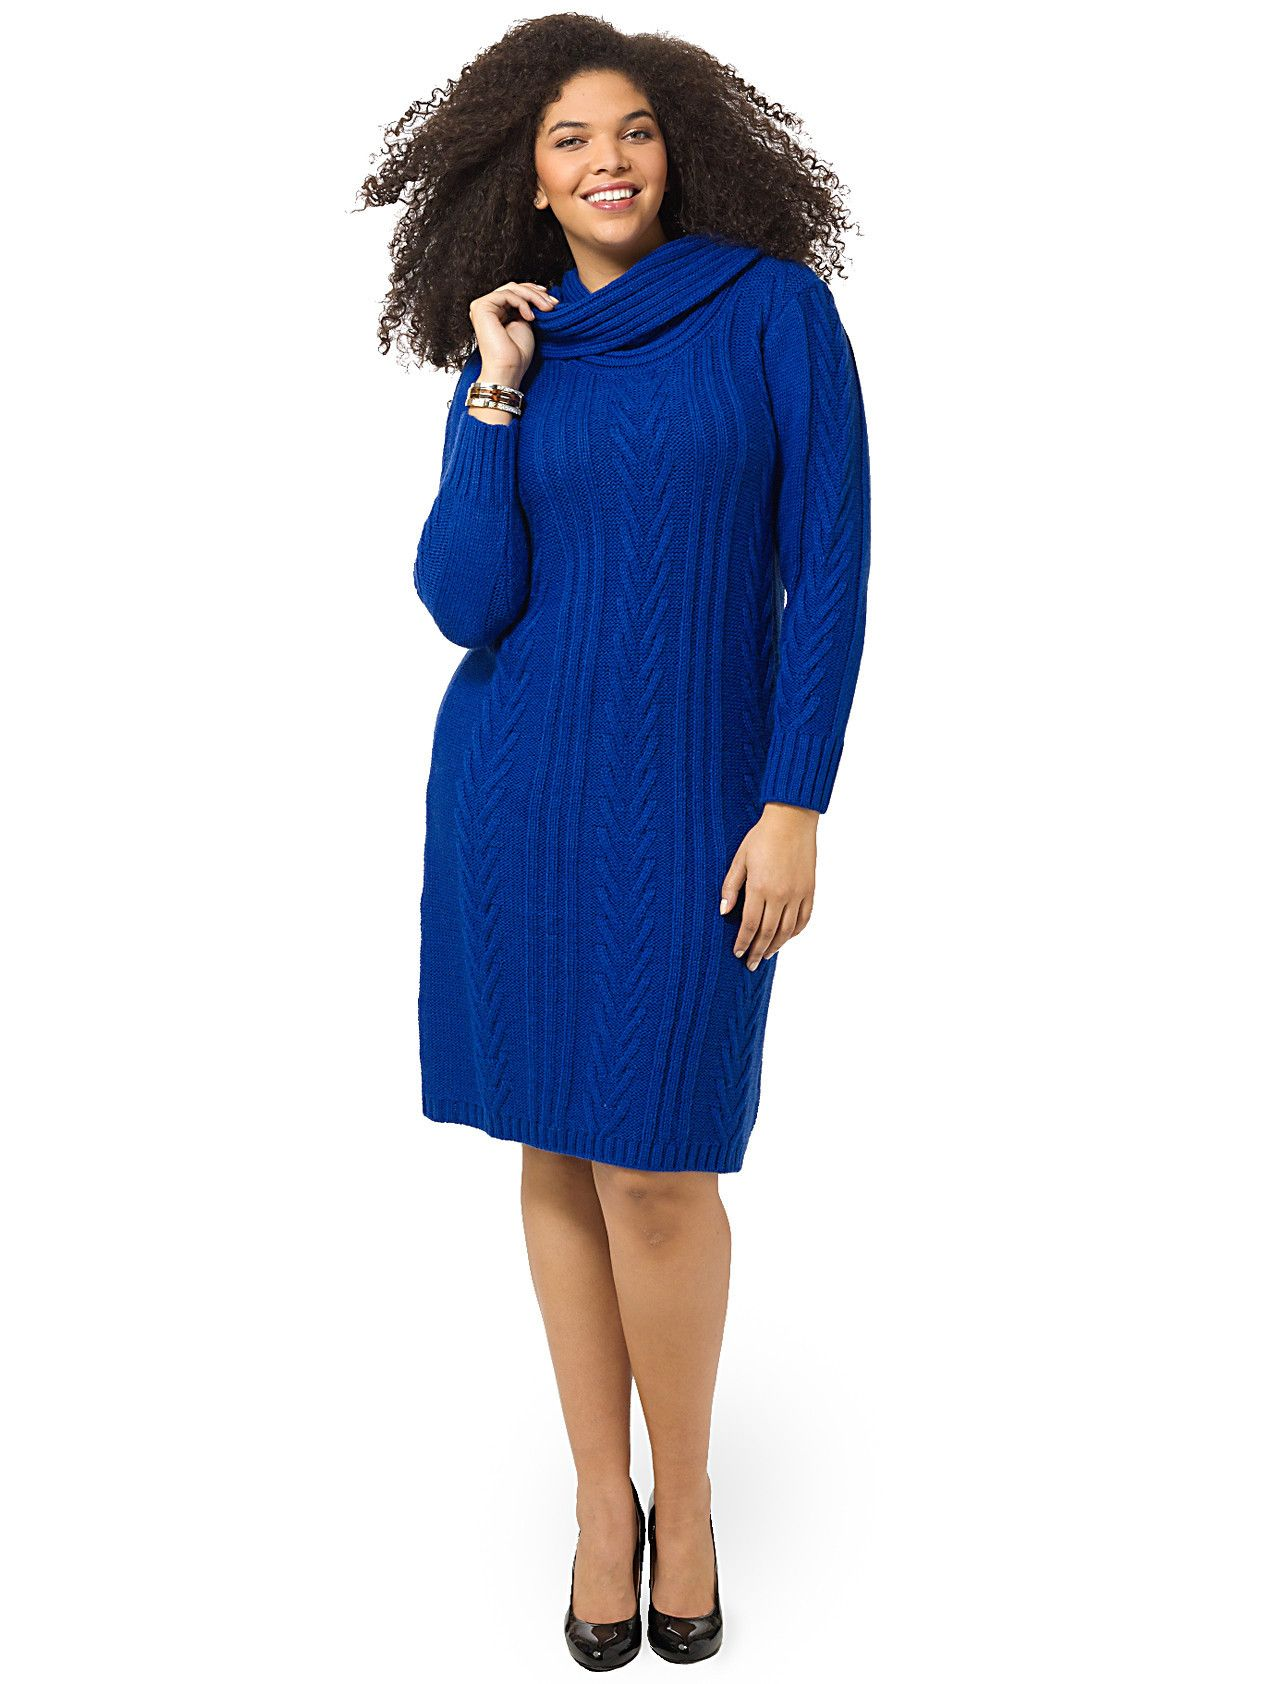 Lima | Cable-Knit Sweater Dress In Royal Blue | Gwynnie Bee ...